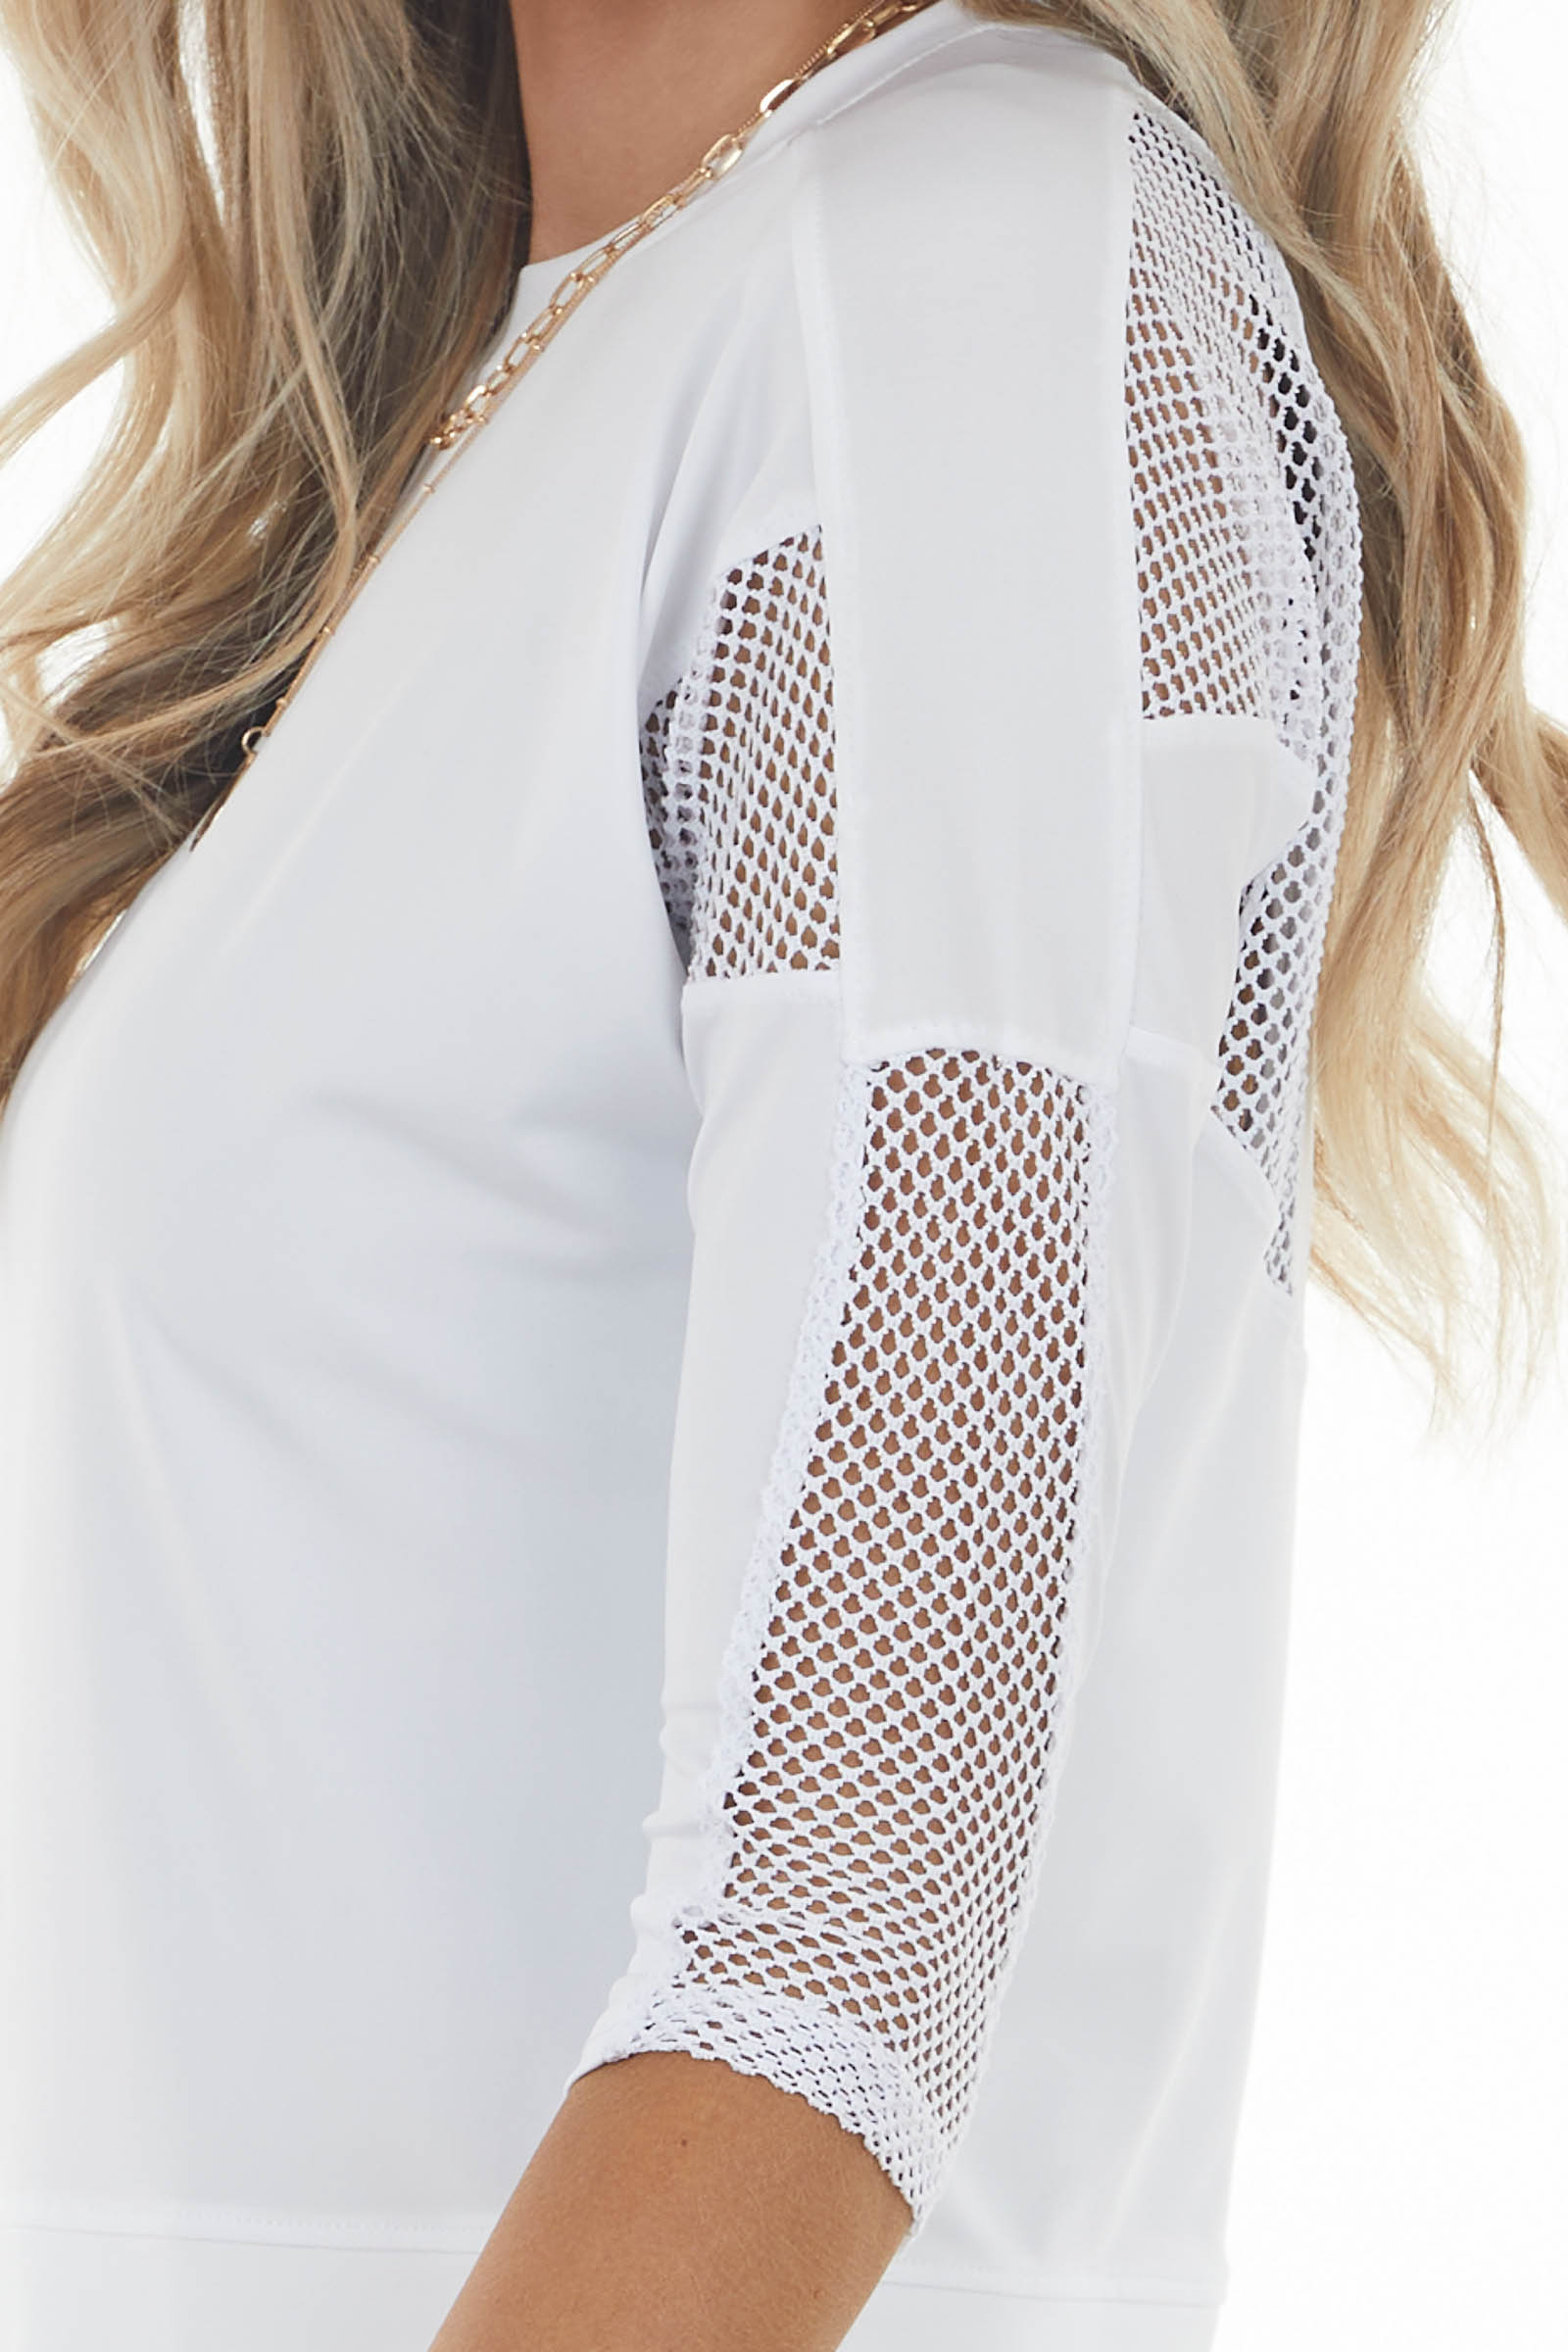 White Stretchy Knit Top with Mesh Details and Back Cut Out